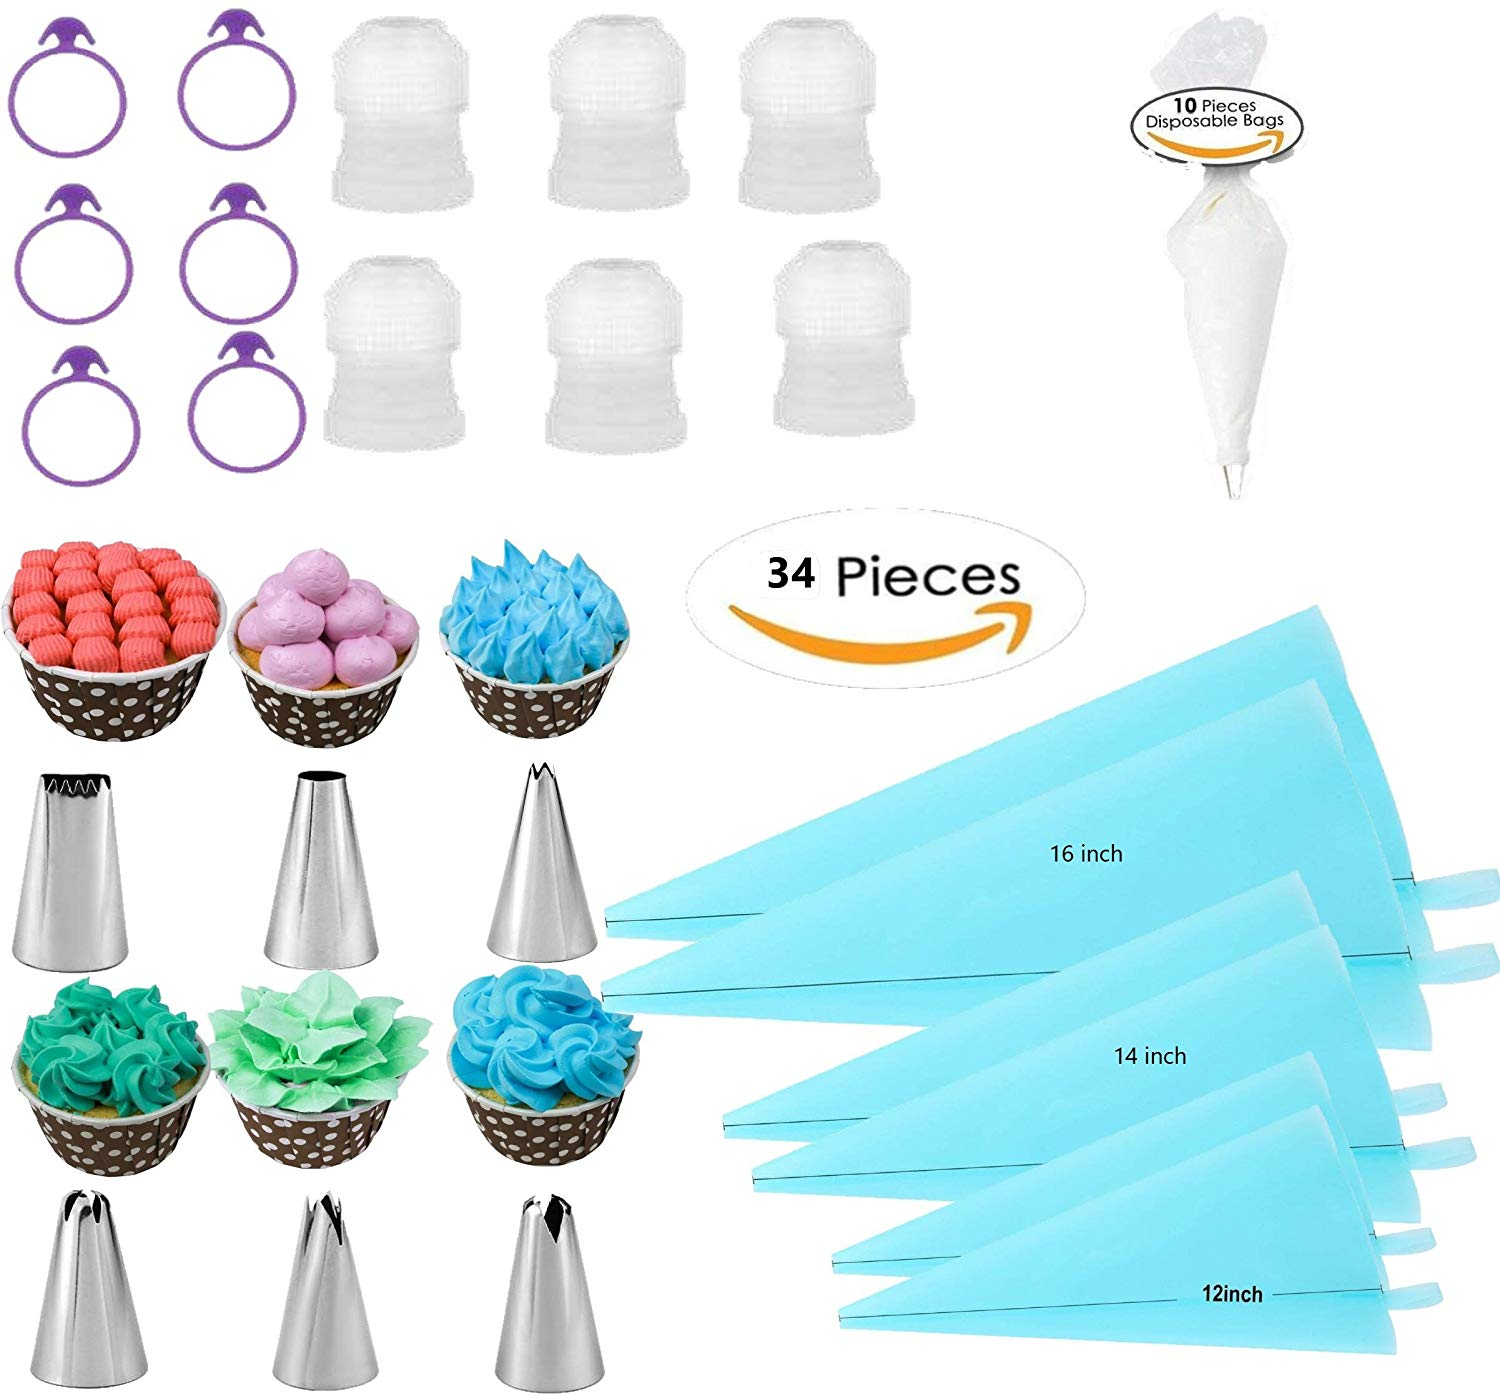 34pcs Silicone Pastry Bags Kit With Cake Decorating Tips Set, Bajiaoting (12''+14''+16'')- 6 Pack ,6 Icing Couplers,6 Pastry Bag Tie,10 Cake Disposable Bags,6 Cake Nozzles Frosting Tools Set